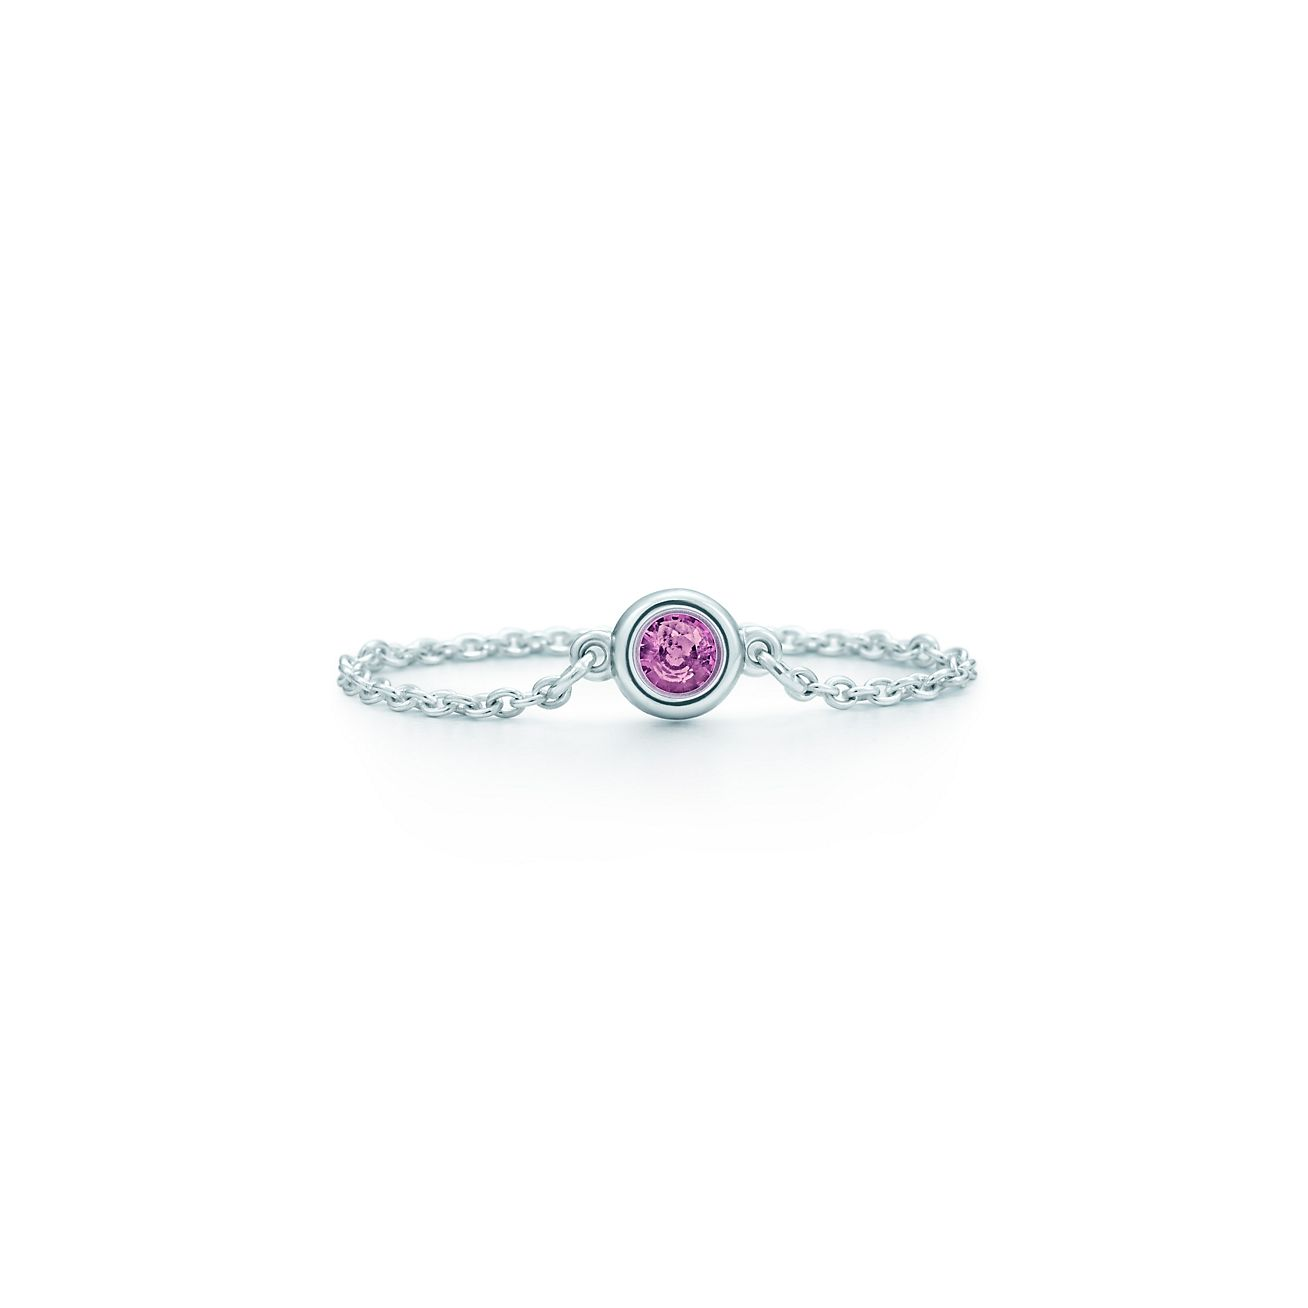 Elsa Peretti Color by the Yard ring in sterling silver with a pink sapphire - Size 5 Tiffany & Co. NUtlx41